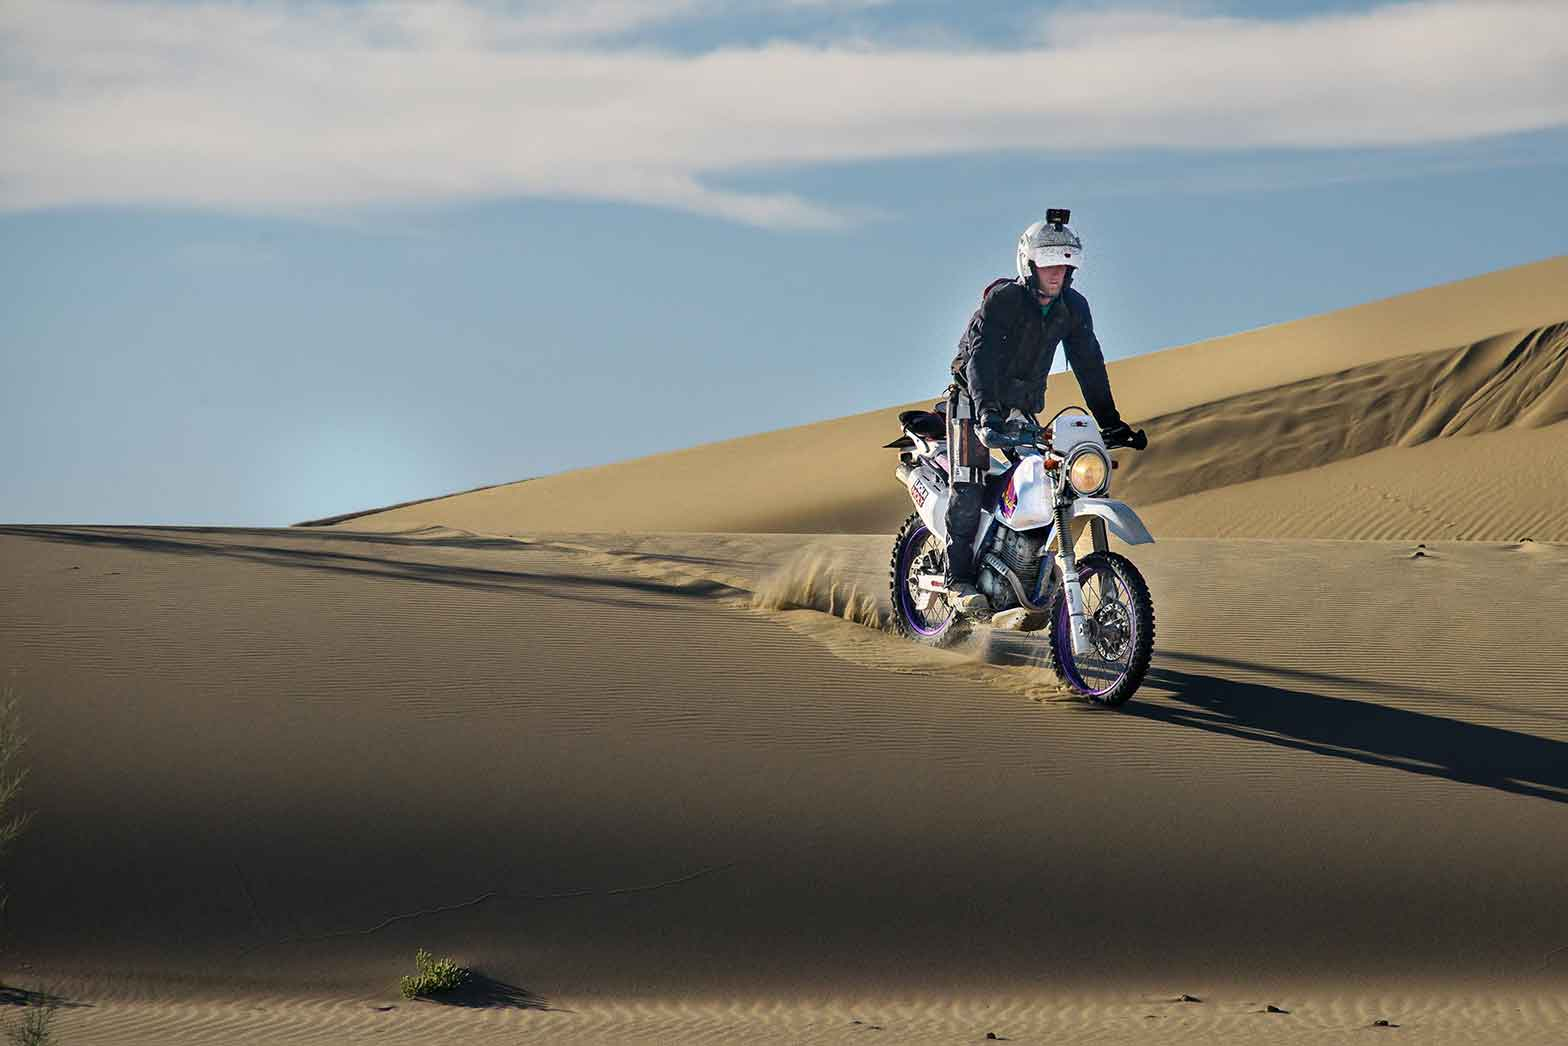 Riding the sand dunes in northwestern Mongolia